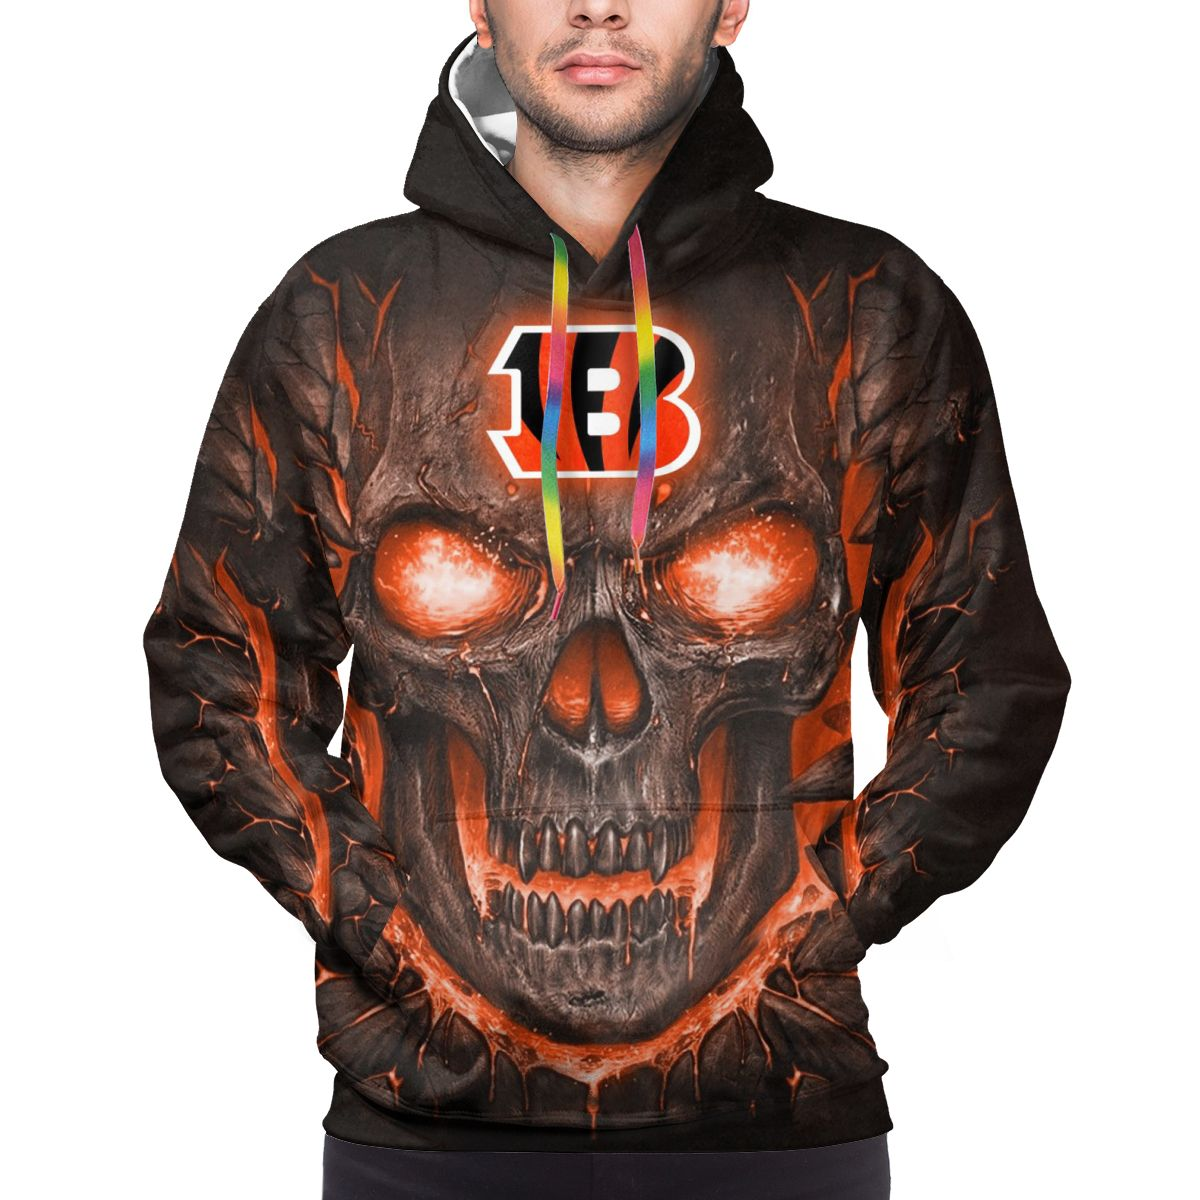 Bengals Skull Lava Logo Print Hoodies For Men Pullover Sweatshirt